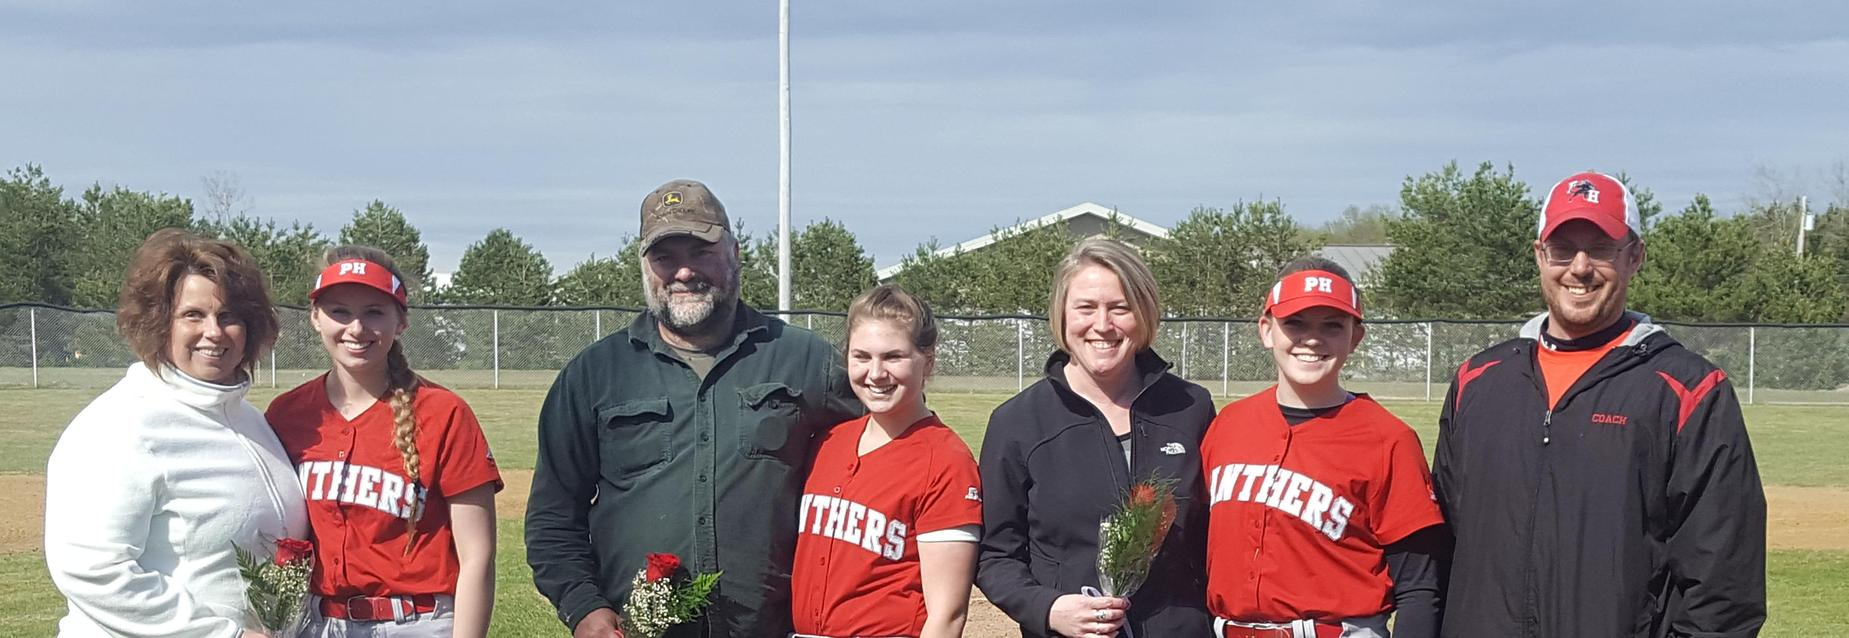 Softball players with their parents & coach